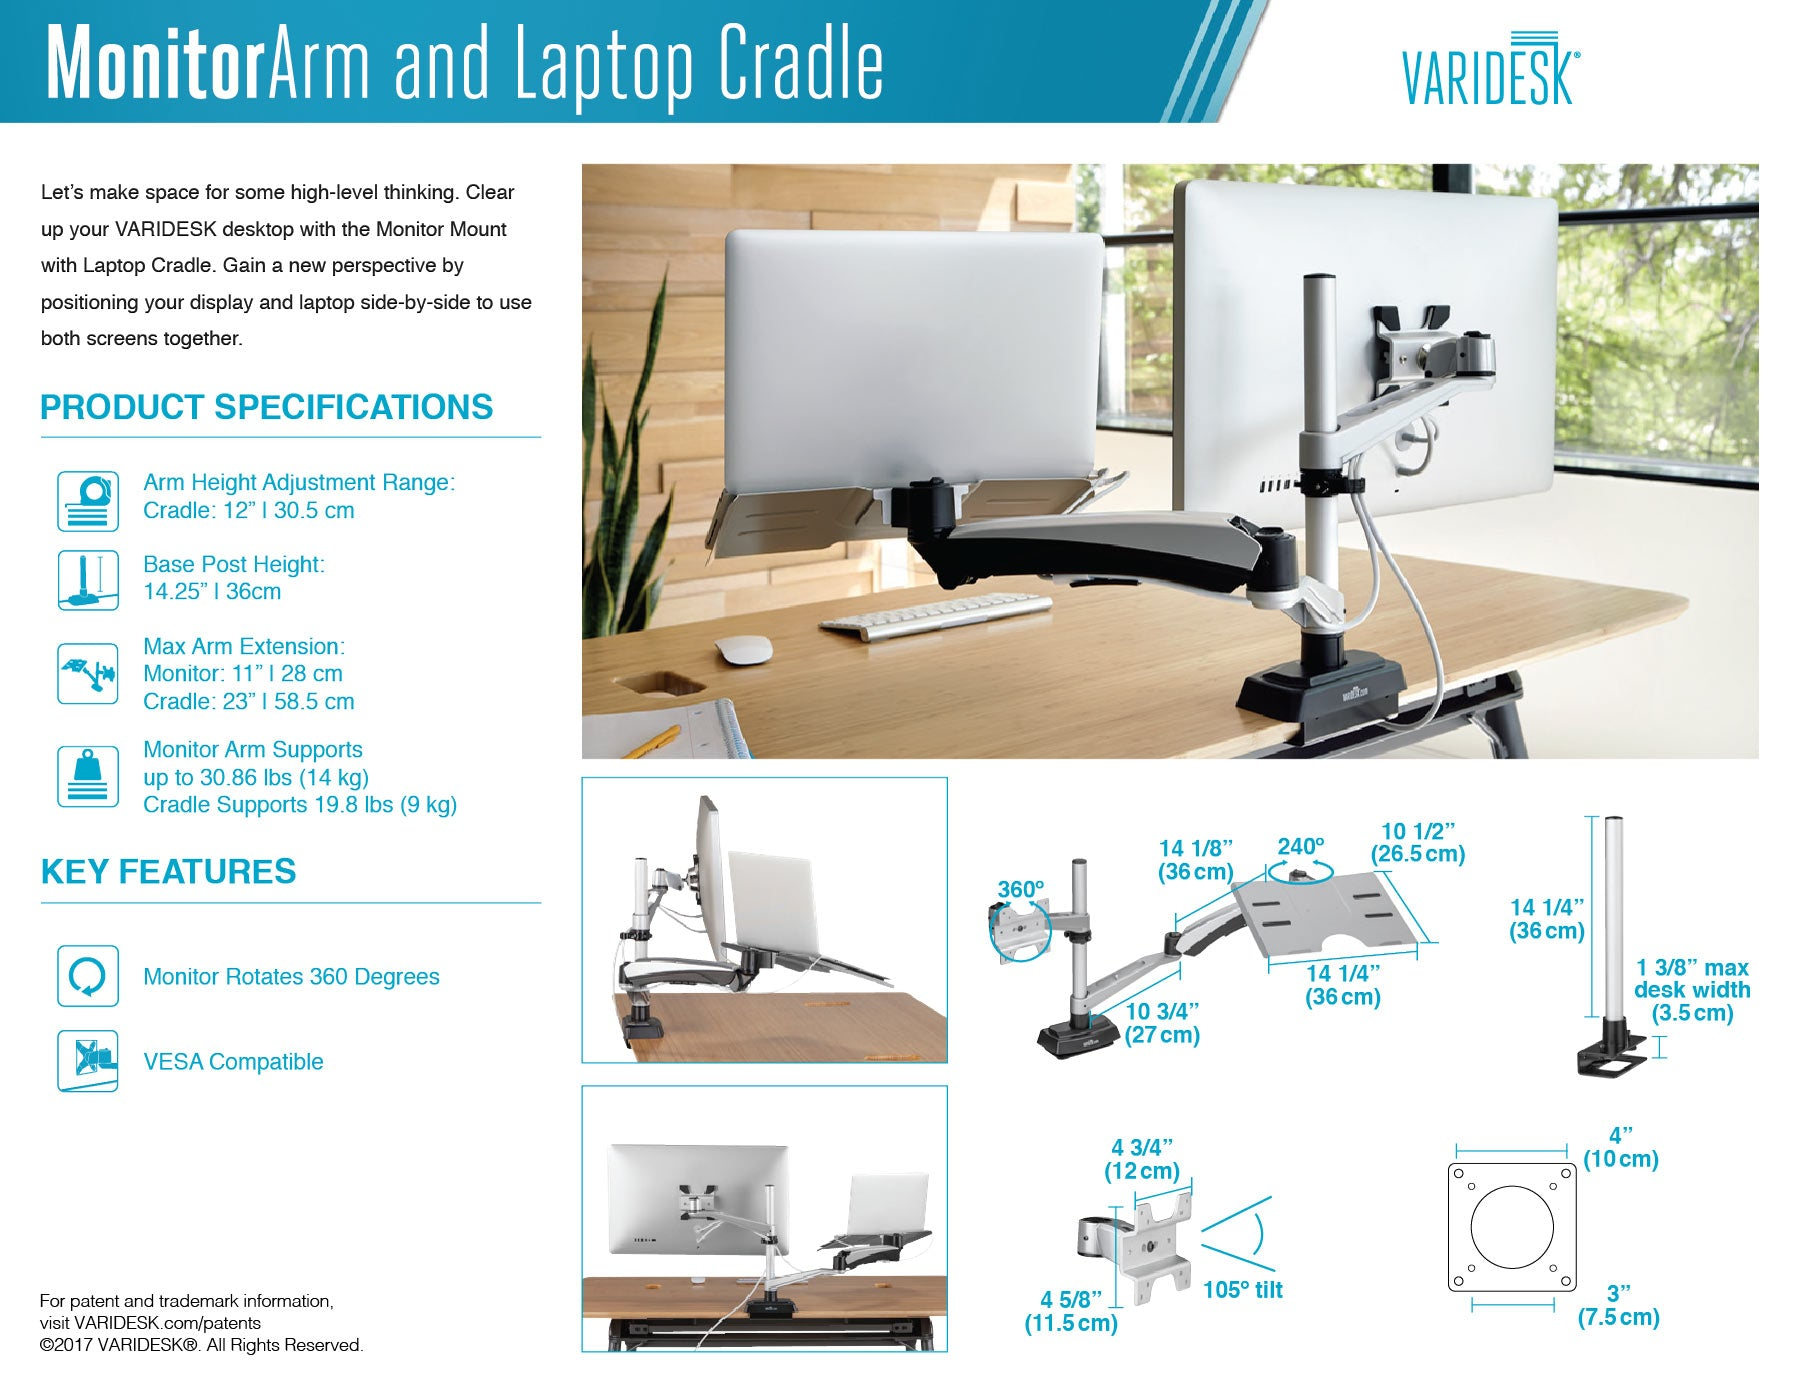 varidesk-monitor-arm-laptop-cradle